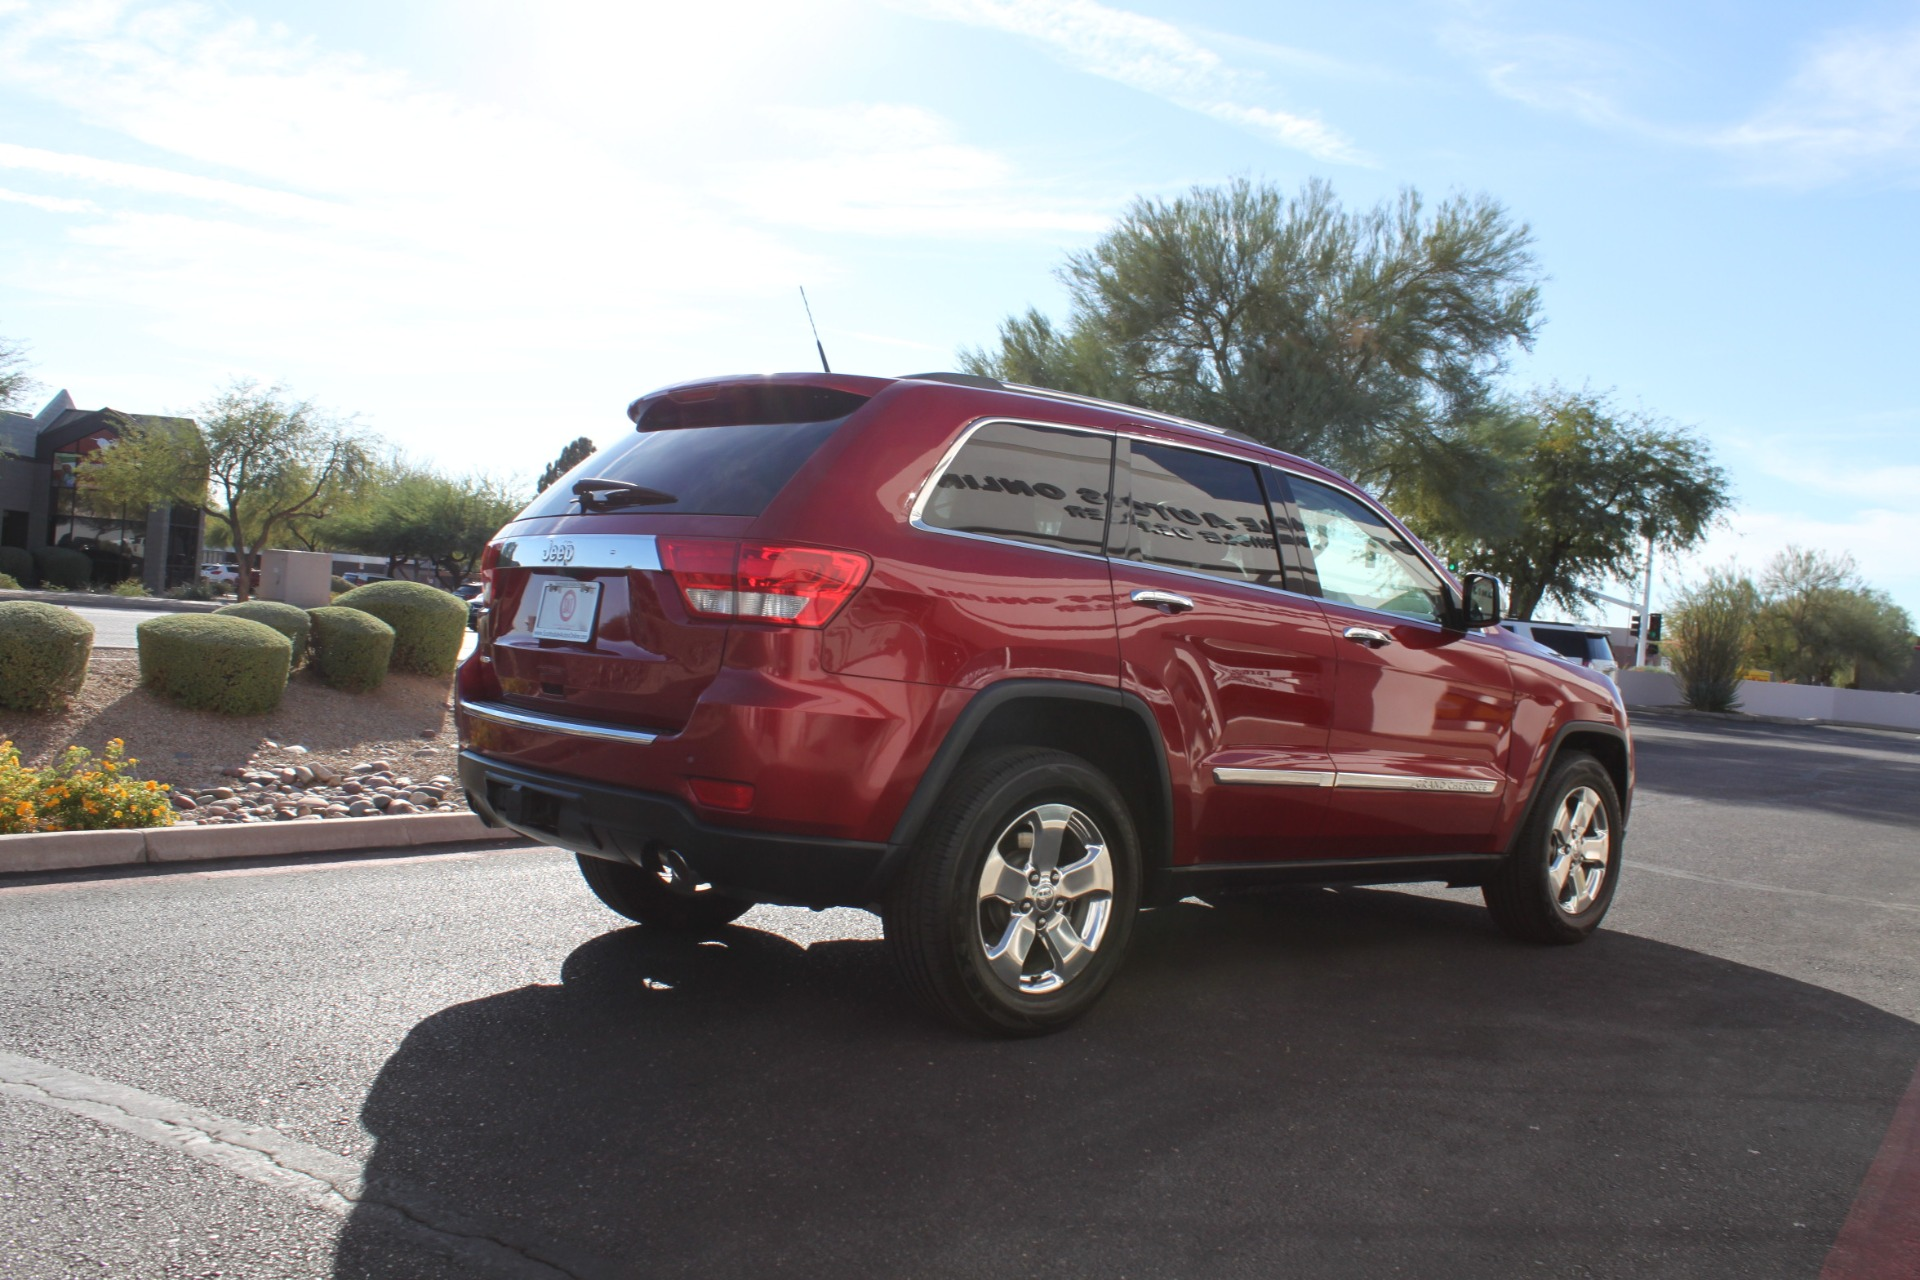 Used-2011-Jeep-Grand-Cherokee-Limited-Fiat